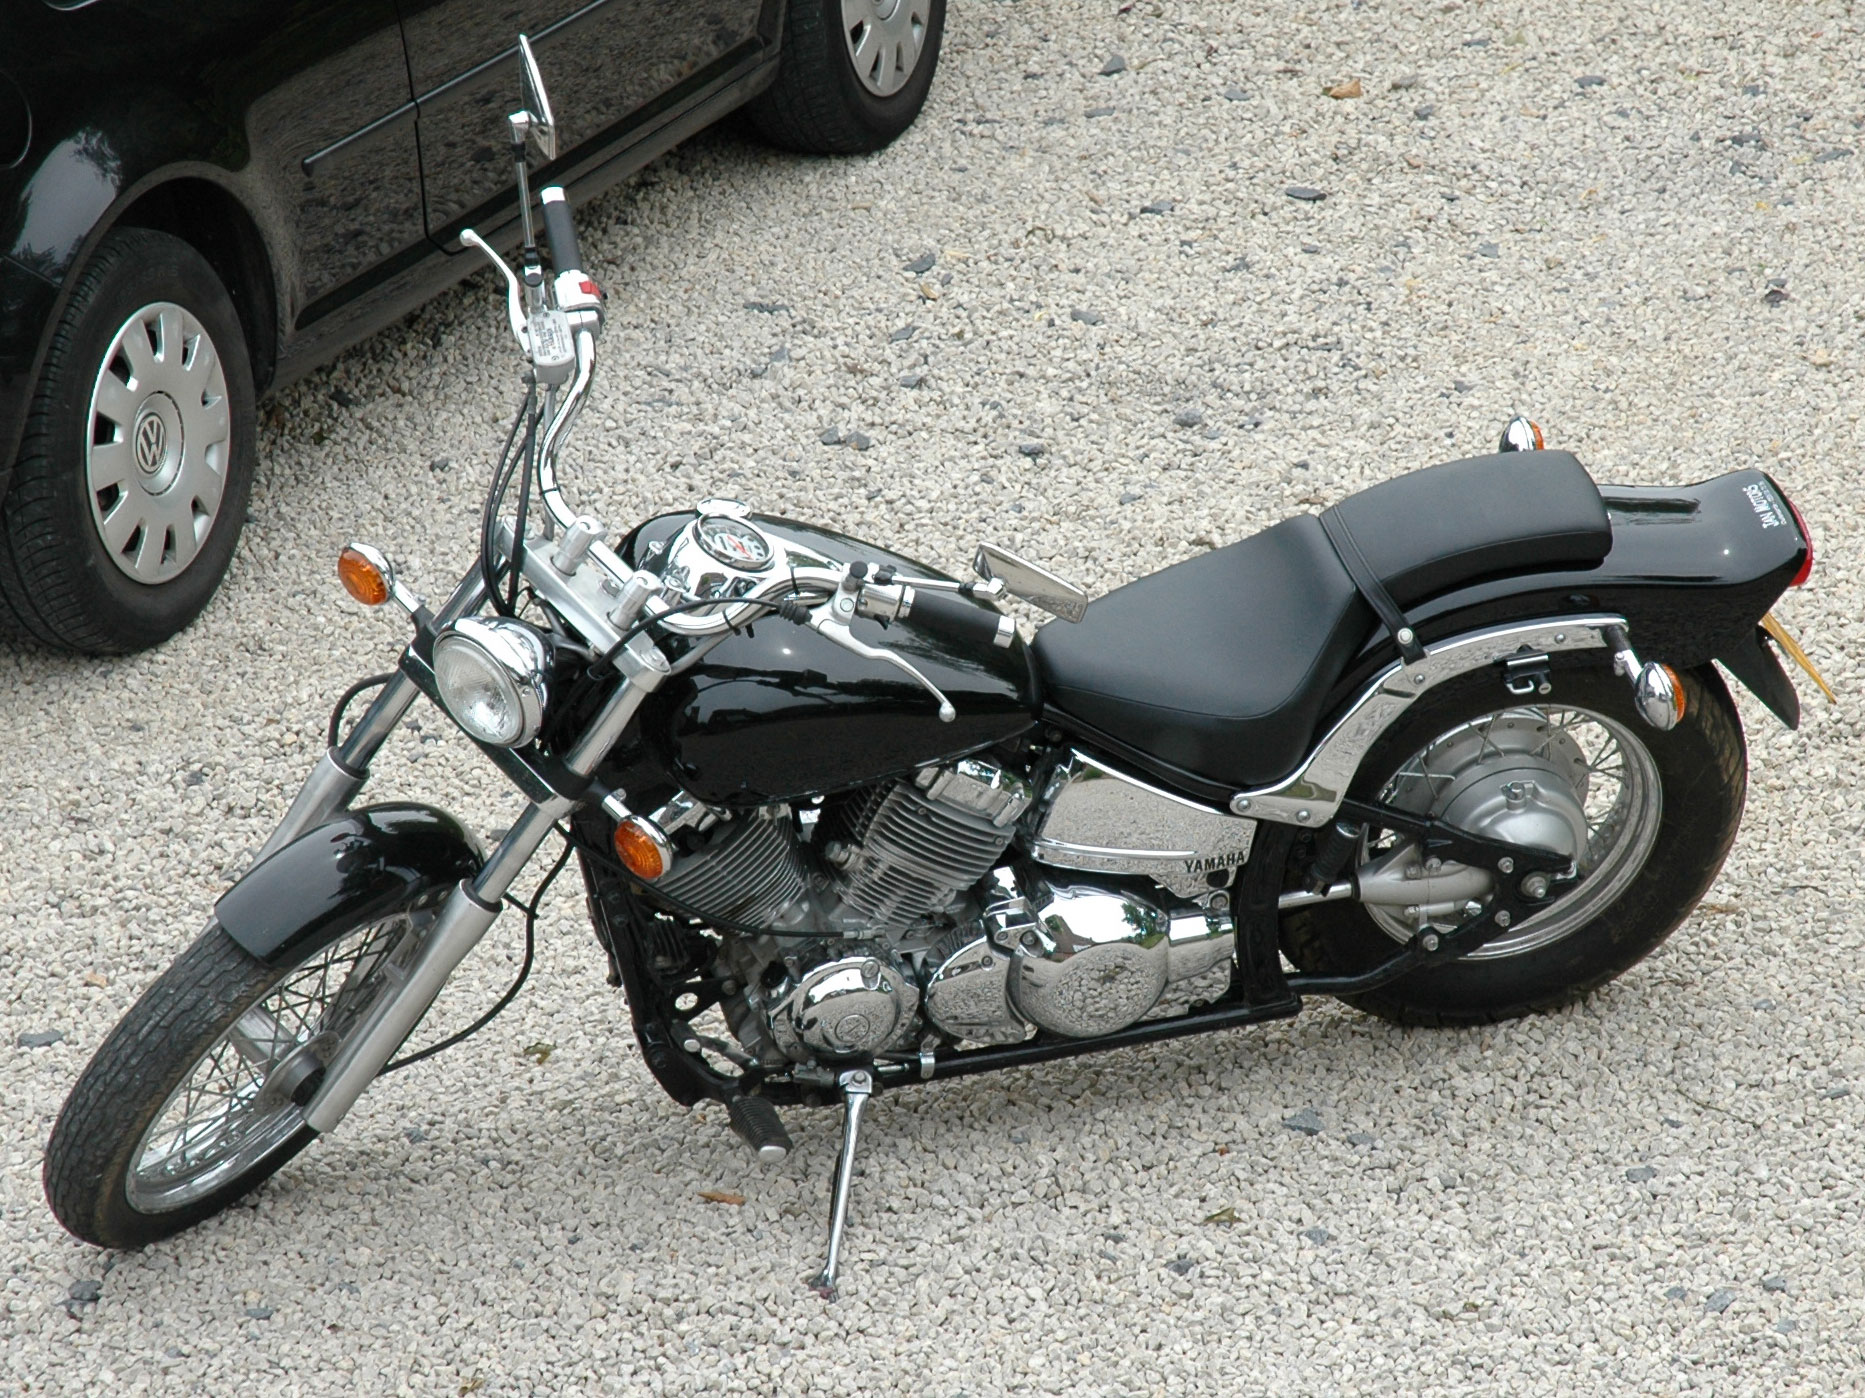 What Is The Yamaha Vstar Called